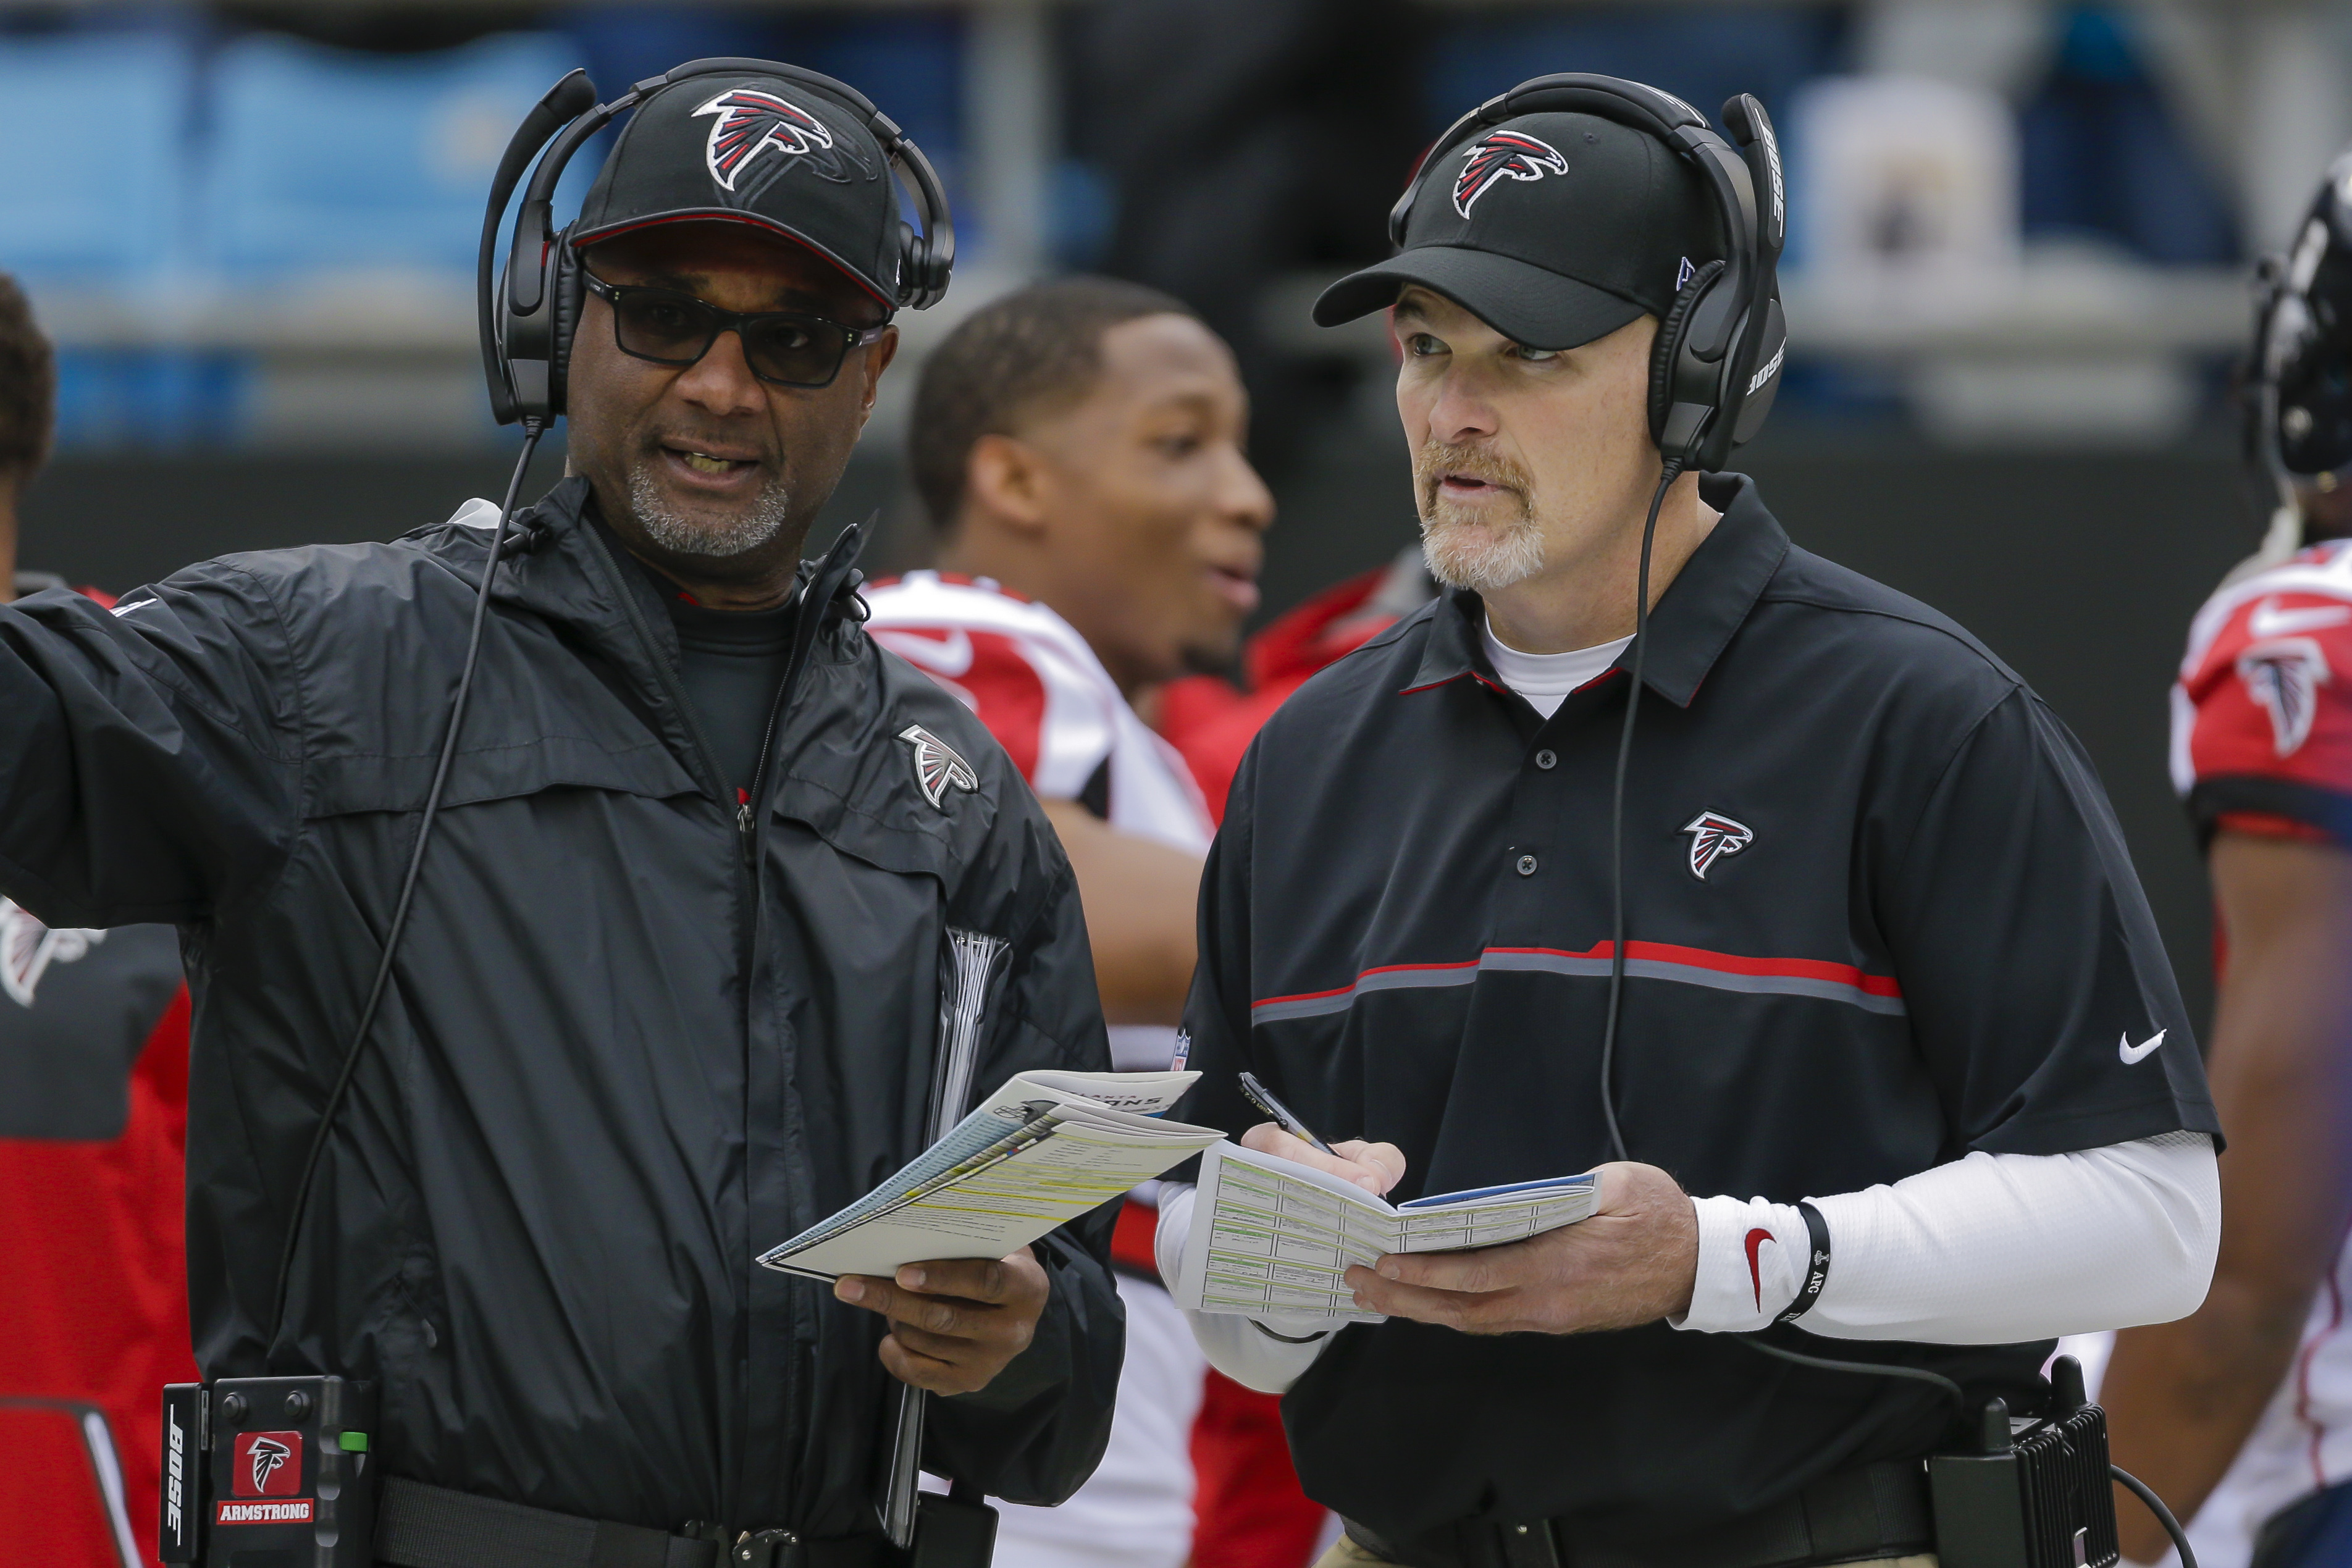 FILE - In this Dec. 24, 2016 file photo, Atlanta Falcons special teams coordinator Keith Armstrong, left, confers with head coach Dan Quinn before an NFL football game against the Carolina Panthers in Charlotte, N.C. The Atlanta Falcons have fired Armstrong, offensive coordinator Steve Sarkasian and defensive coordinator Marquand Manuel. The firings came one day after the end of the team's first losing season since 2014. Falcons owner Arthur Blank recently had said he still has confidence in Quinn and general manager Thomas Dimitroff, but changes came as expected after a 7-9 finish. (AP Photo/Bob Leverone, File)